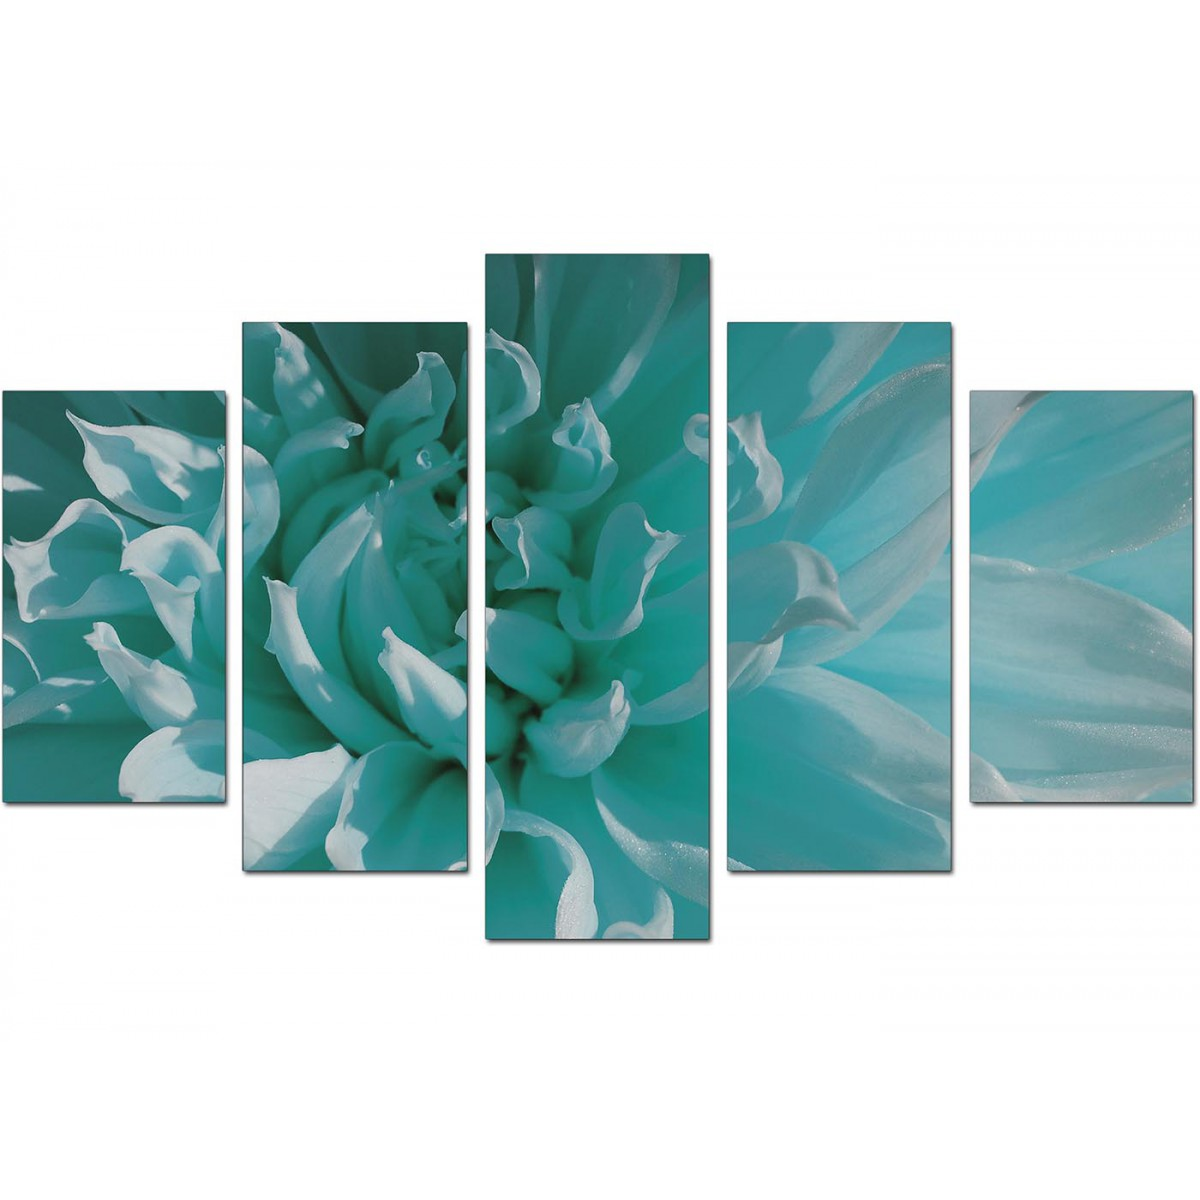 Extra Large Flower Canvas Wall Art 5 Piece In Teal